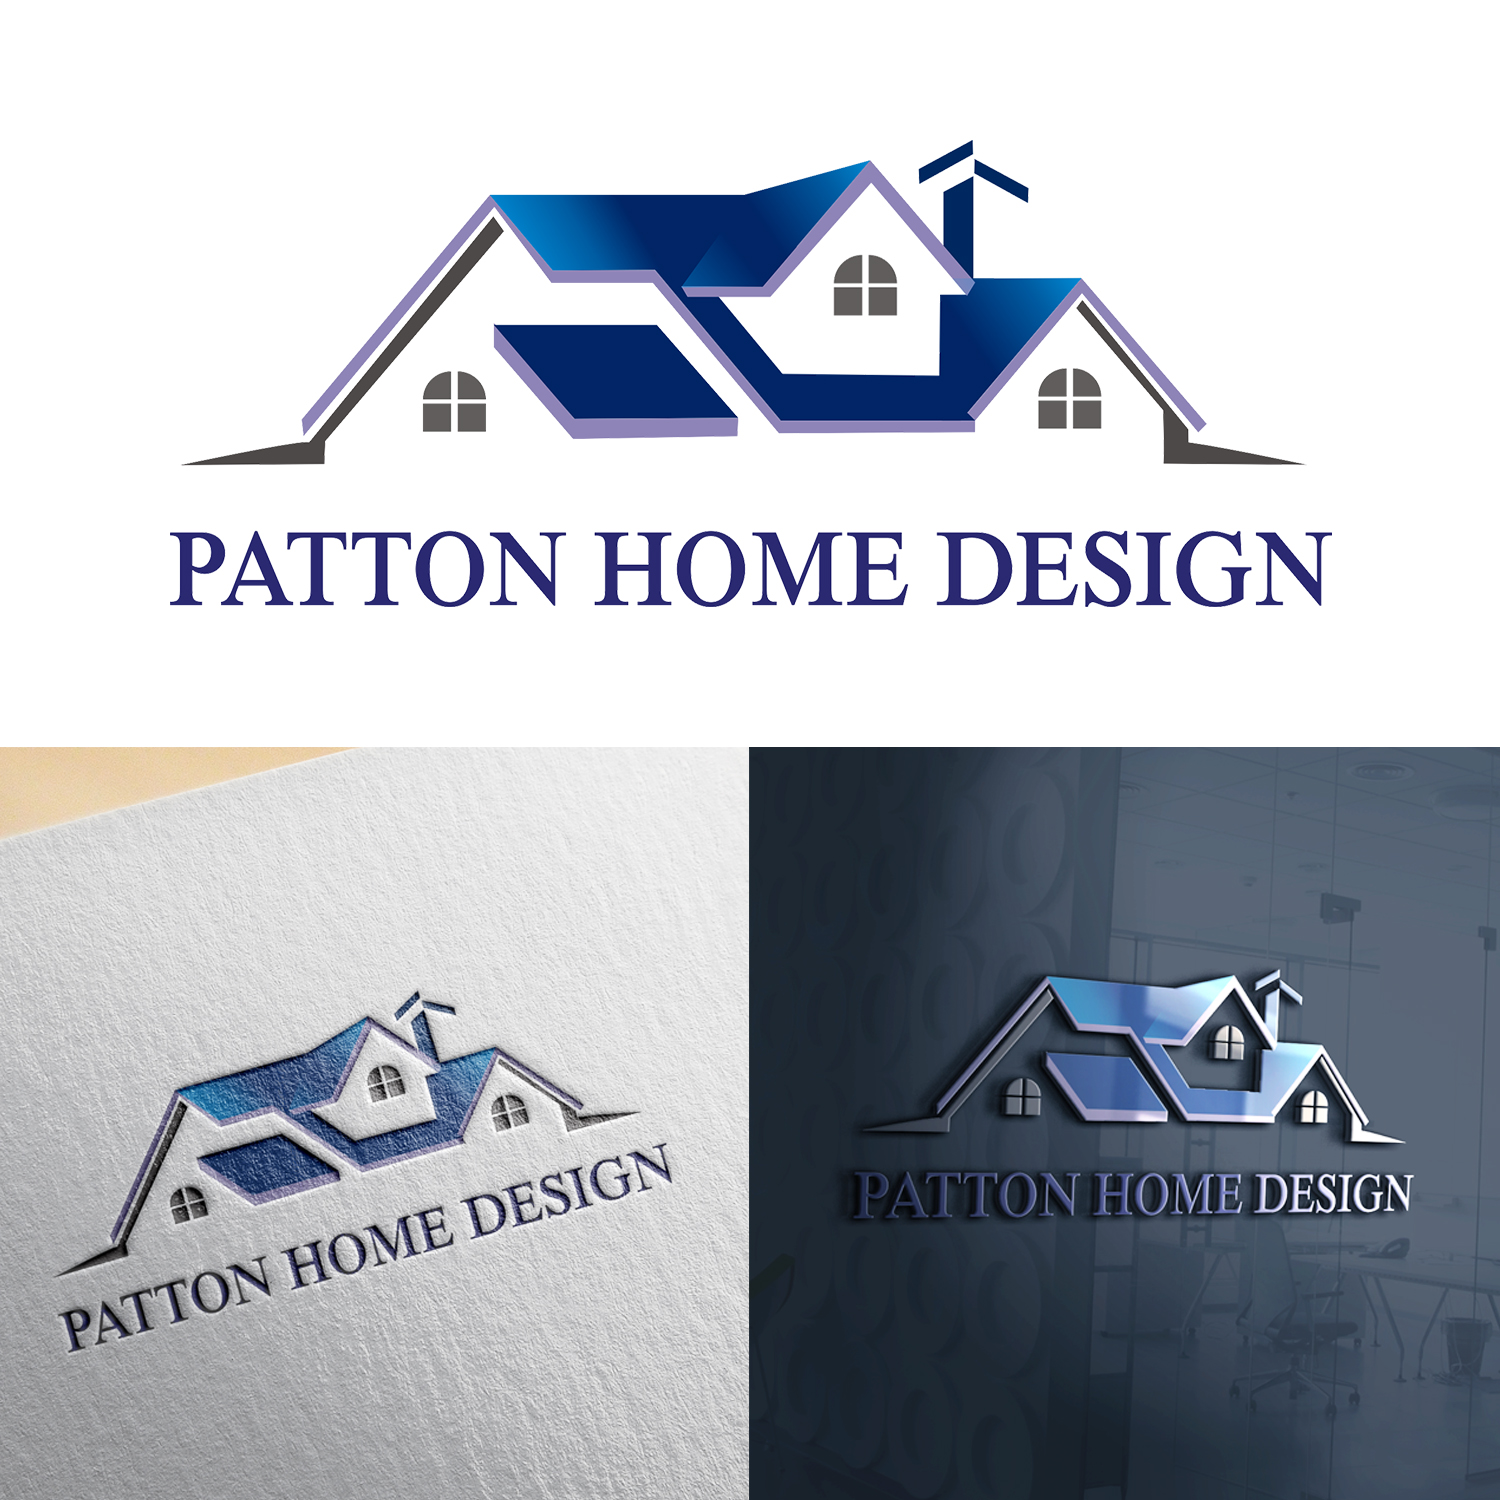 Elegant professional architecture logo design for heartland homes in united states design 18349084